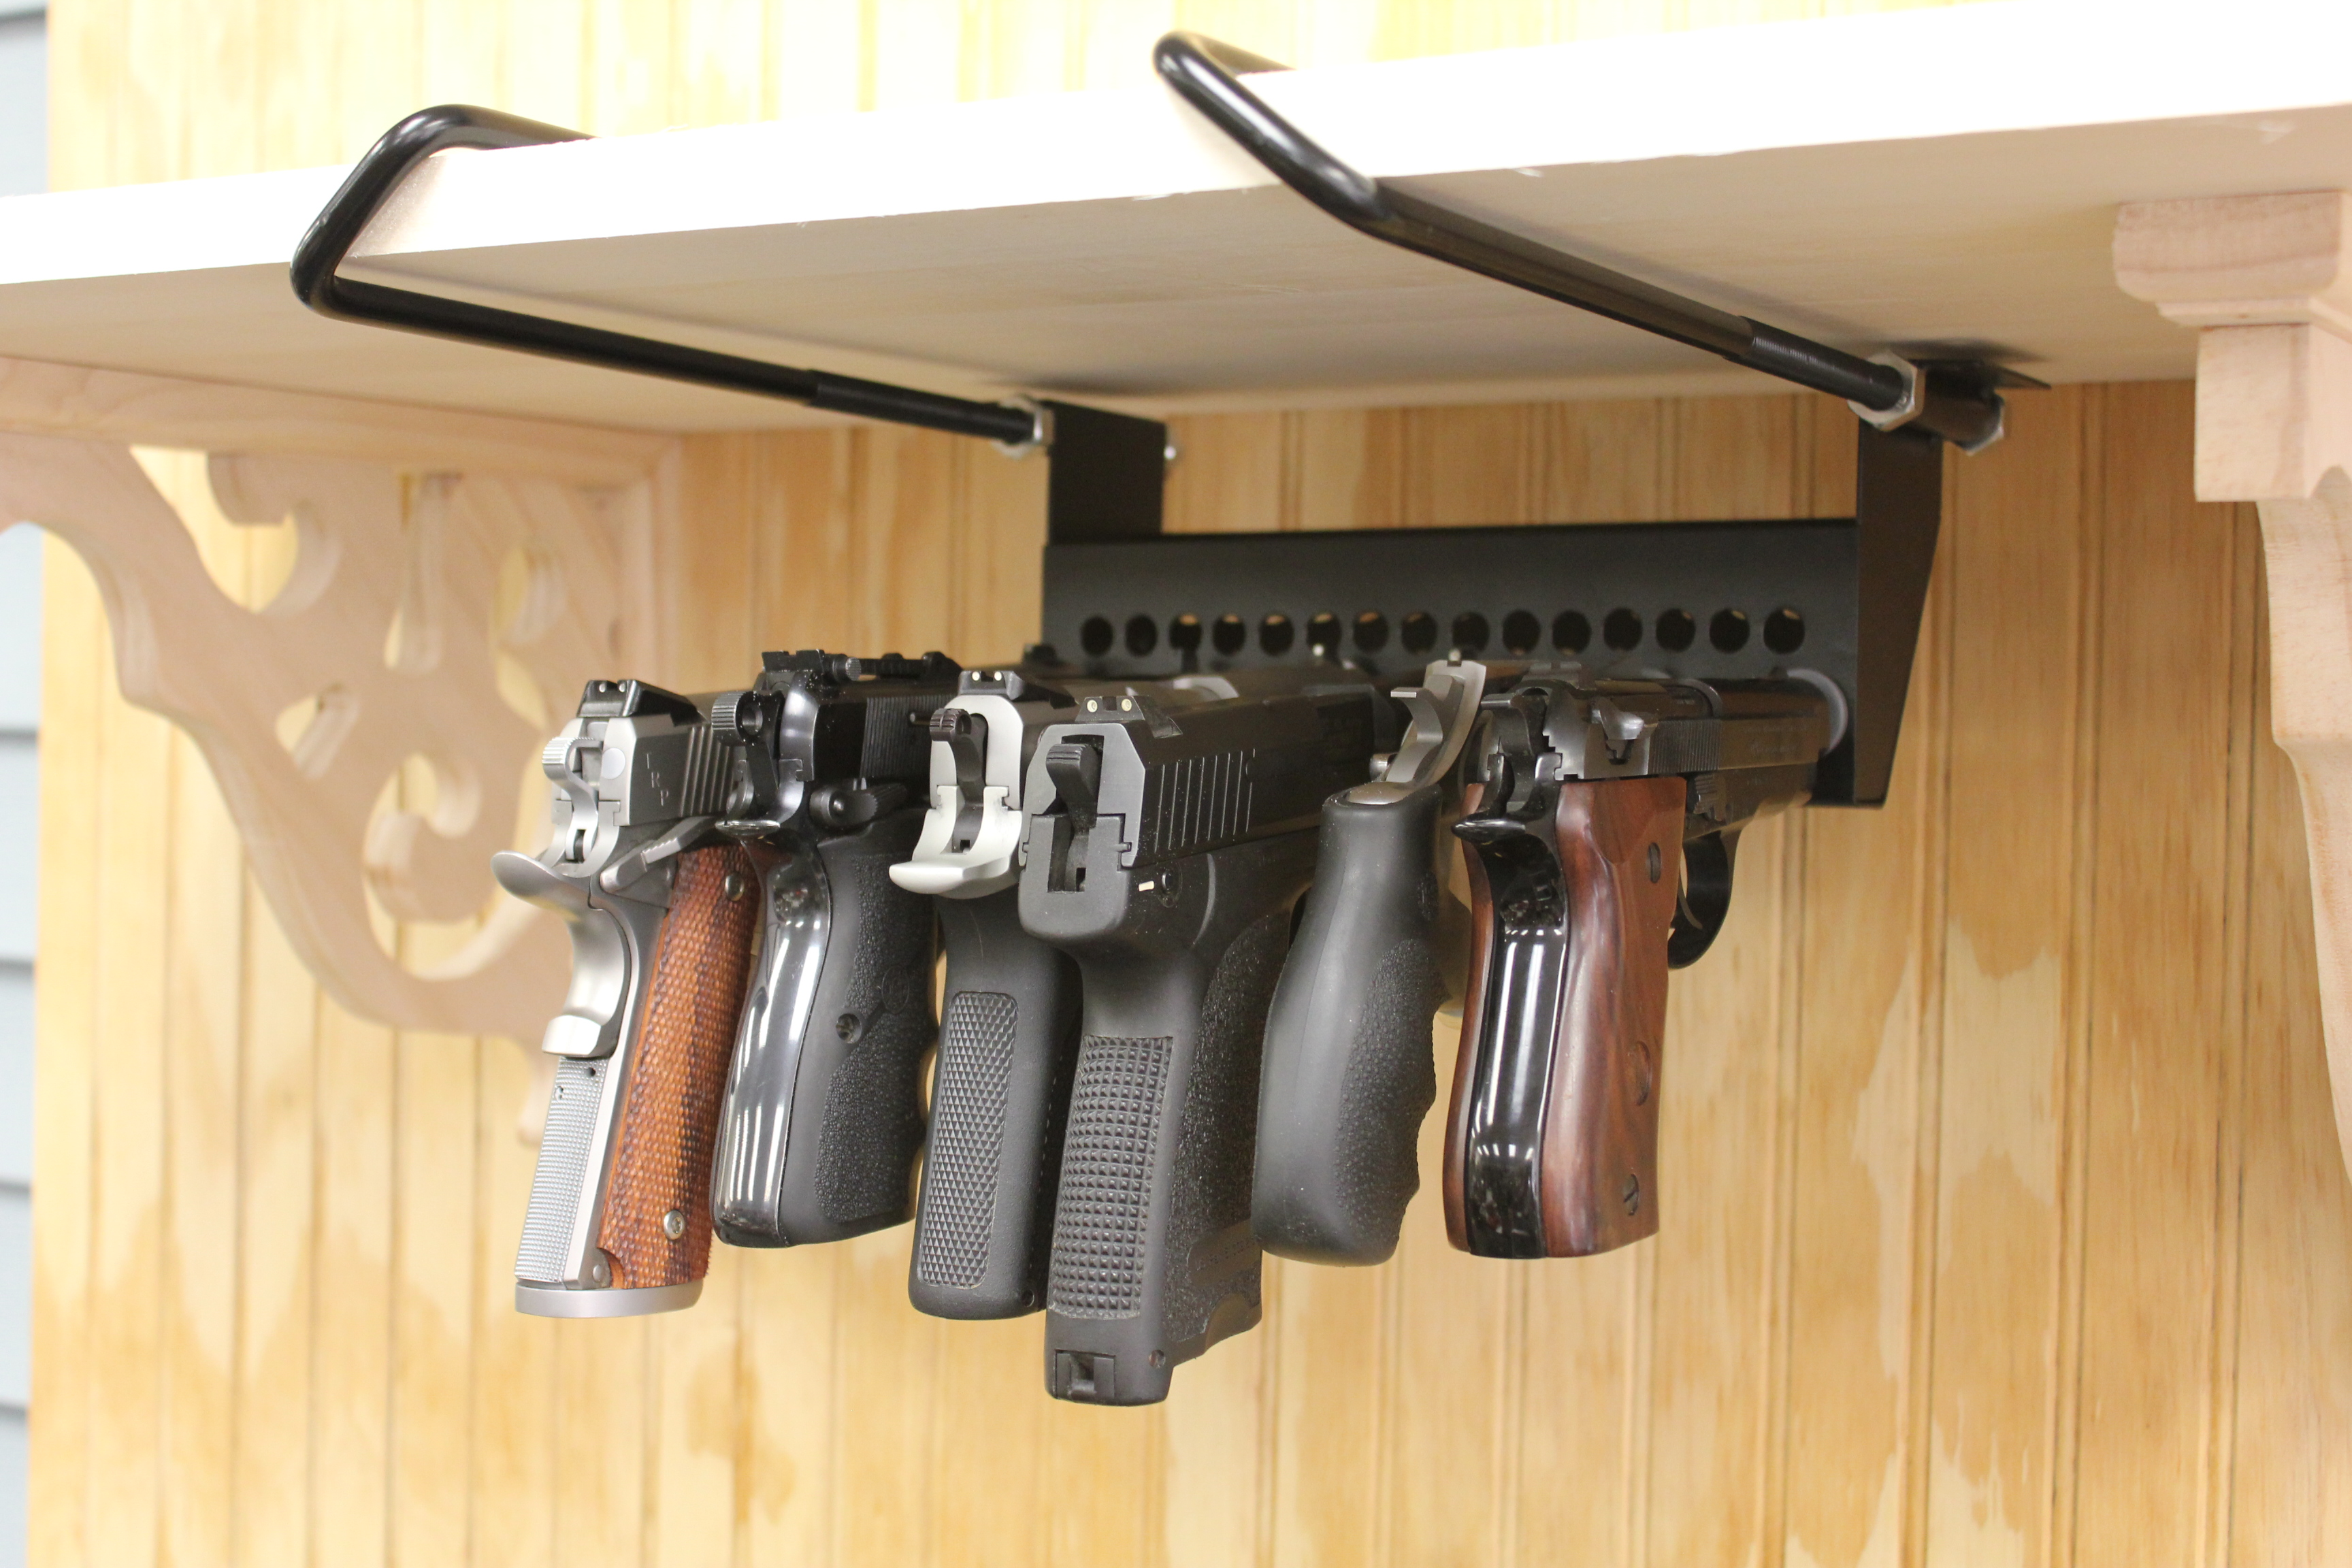 Hyskore R Announces An Expanded Line Of Gun Storage